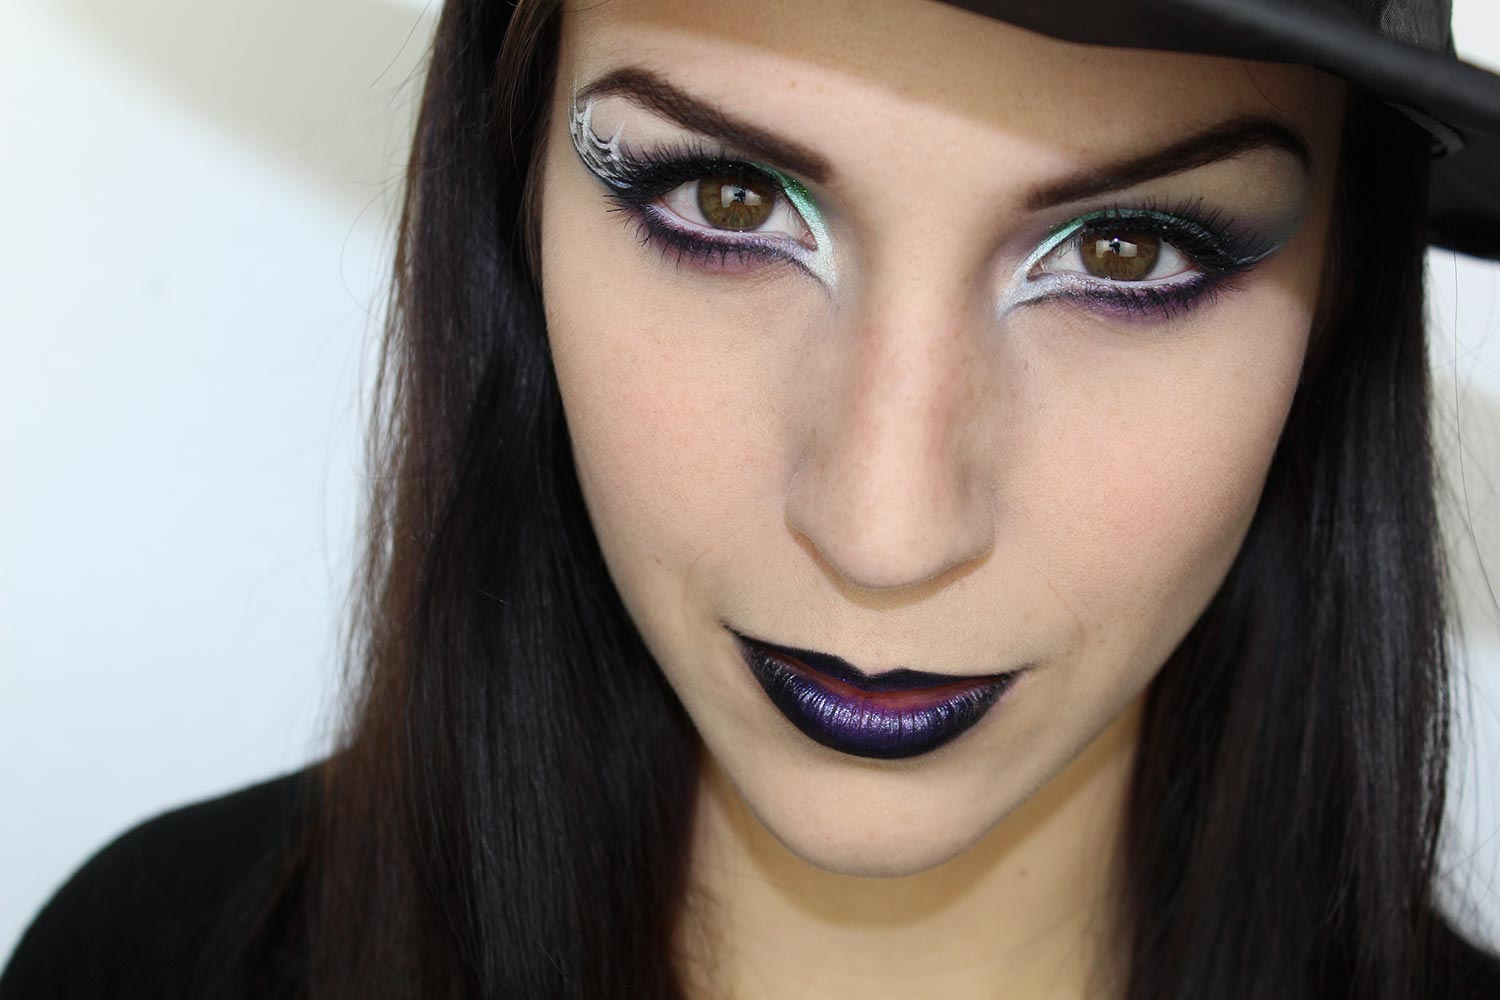 Beau maquillage facile a faire maison design - Tuto maquillage halloween ...